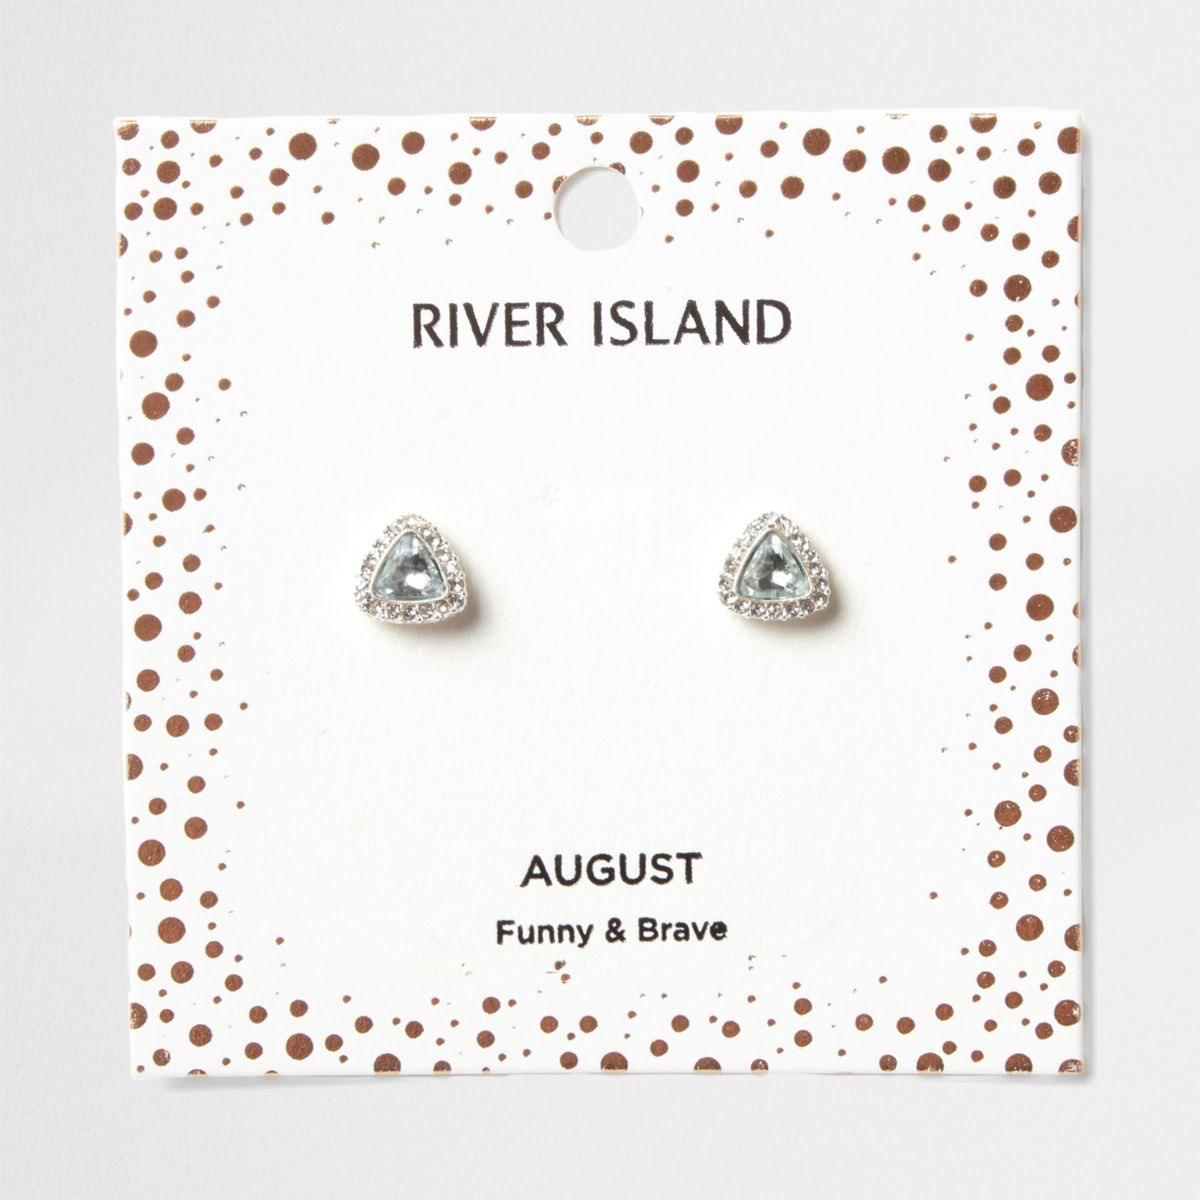 Green gem August birthstone stud earrings